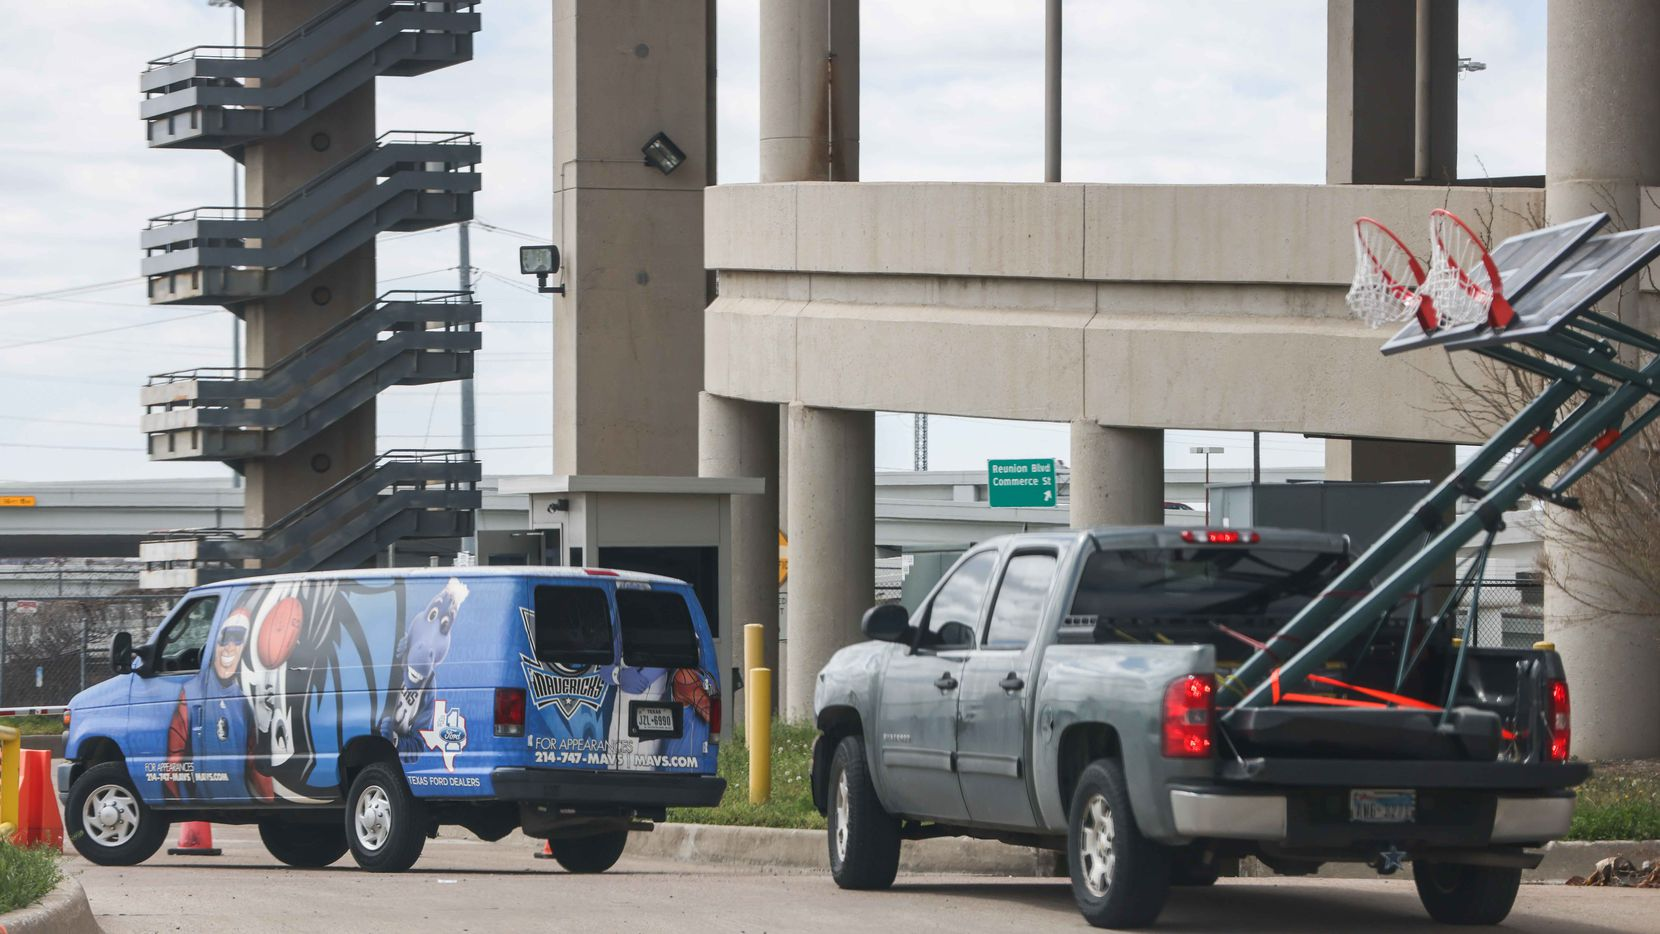 A van identified with NBA team Mavericks logo, arrives along with a pickup carrying two basketball hoops to the Kay Bailey Hutchison Convention Center in Dallas on Thursday, March 18, 2021, where 200 unaccompanied immigrant children arrived Wednesday evening. The U.S. Department of Health and Human Services confirmed Tuesday that the convention center will serve as an emergency intake site to hold teens who have arrived at the U.S.-Mexico border to decrease overcrowding at Customs and Border Protection facilities. (Lola Gomez/The Dallas Morning News)